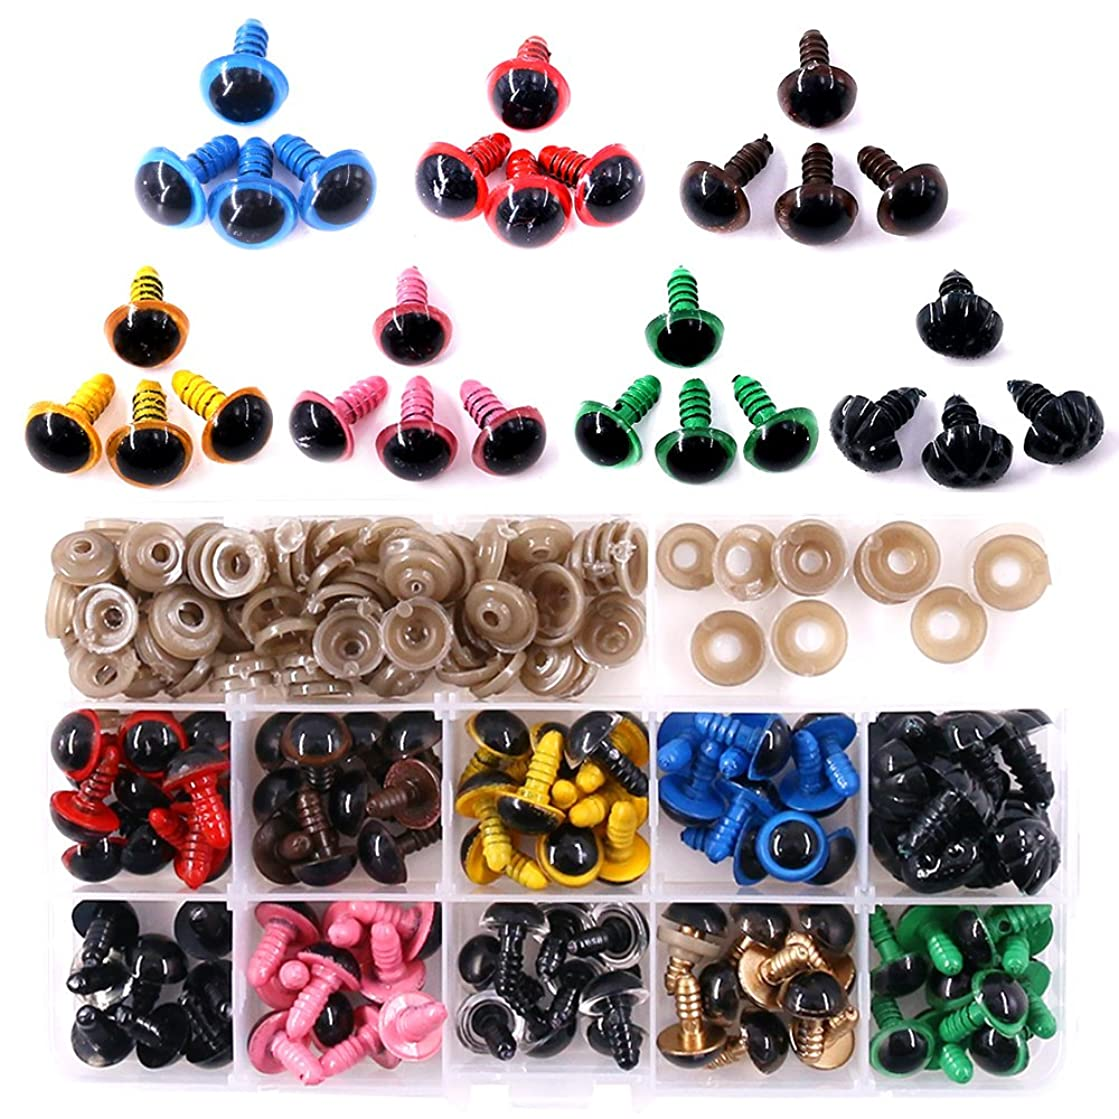 ??? Swpeet 90pcs 12MM 9 Color Plastic Safety Eyes and 10Pcs 12MM Noses Set for Doll, Puppet, Plush Animal Making and Teddy Bear